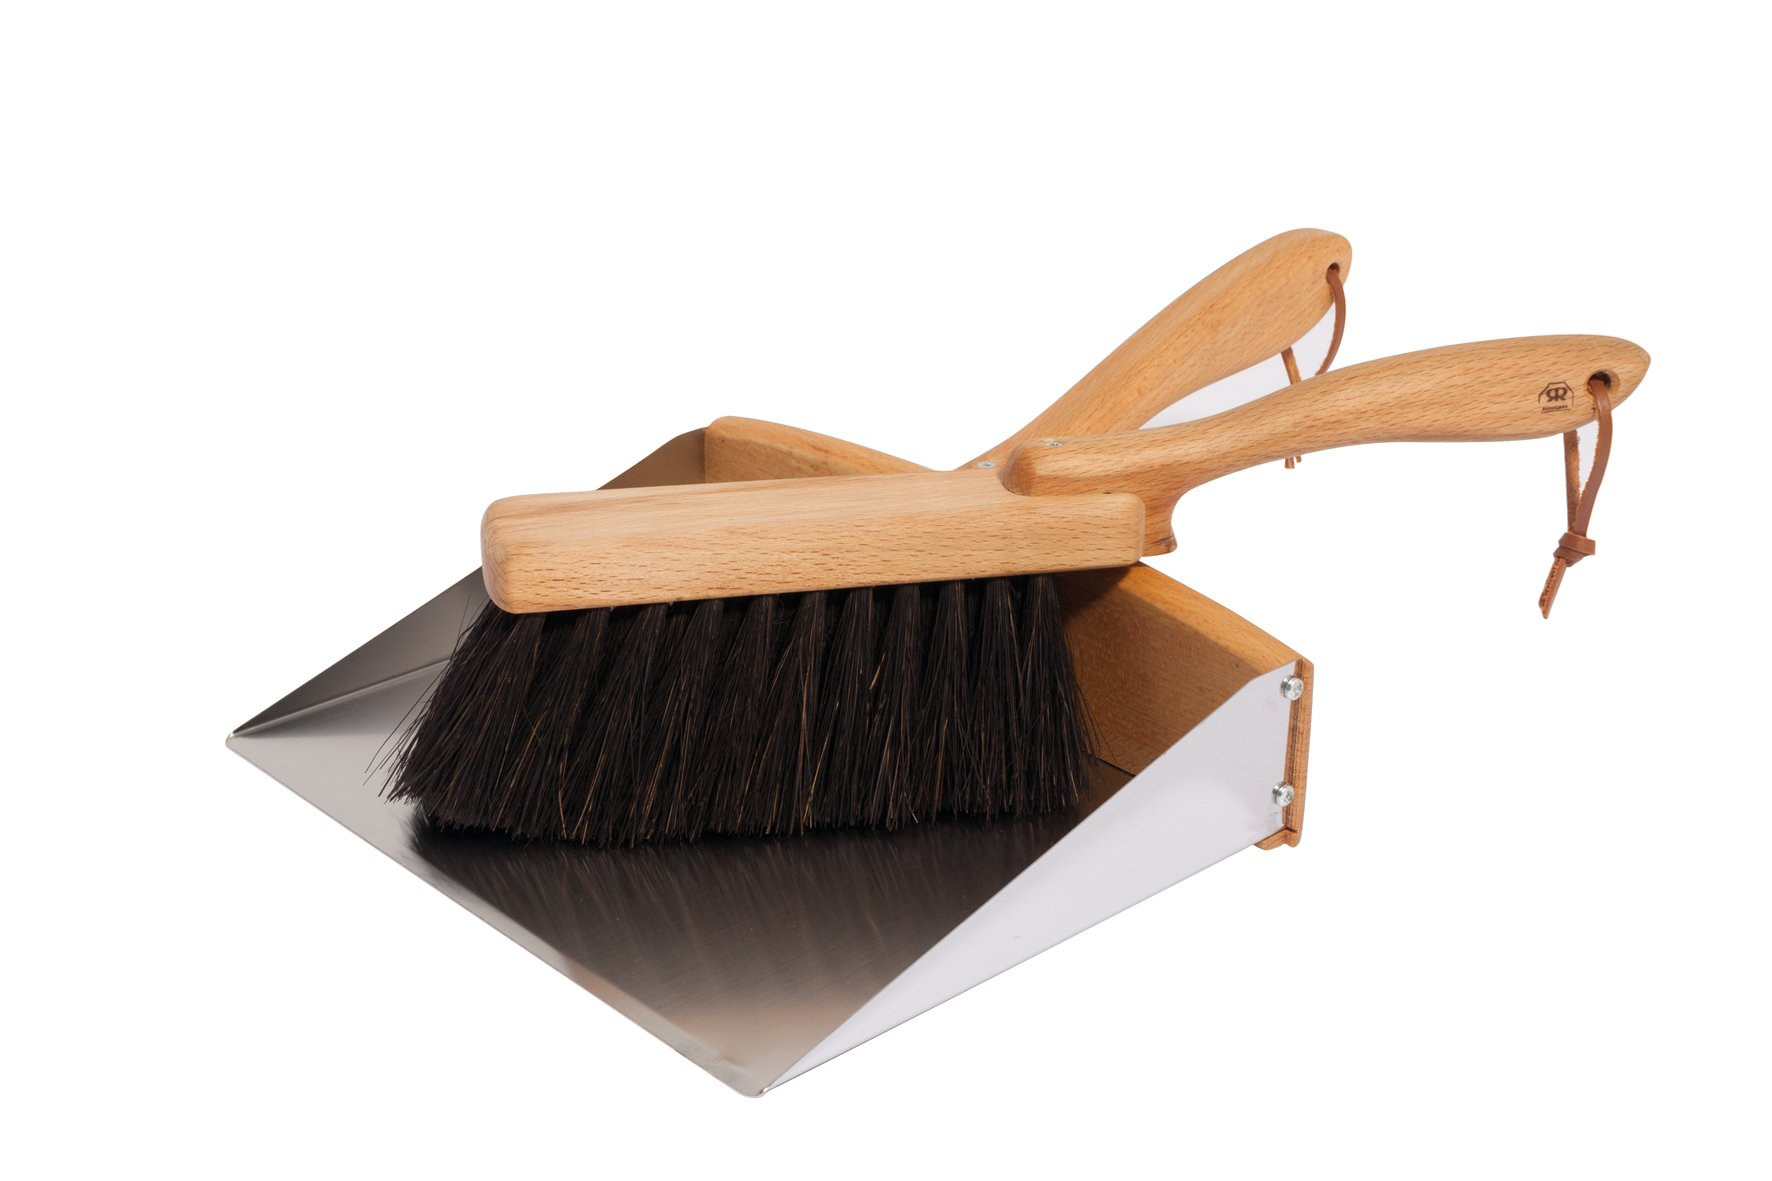 Redecker Arenga Fiber Hand Brush and Dust Pan Set with Oiled Beechwood Handles, 14-1/8-Inches